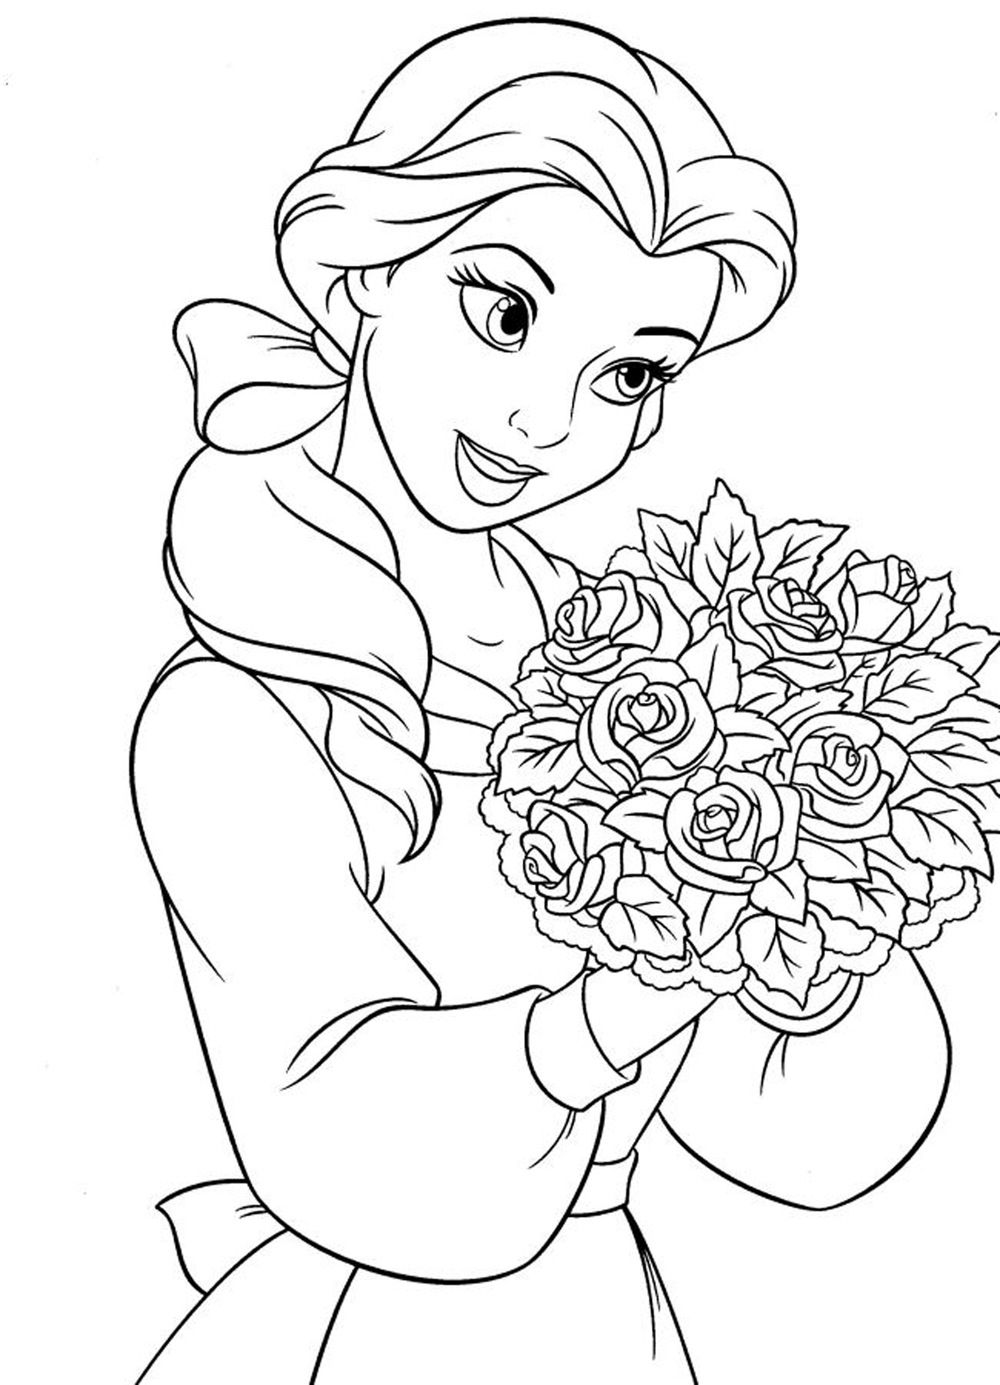 Ariel princess coloring pages free - Princess Coloring Pages For Girls Free Large Images